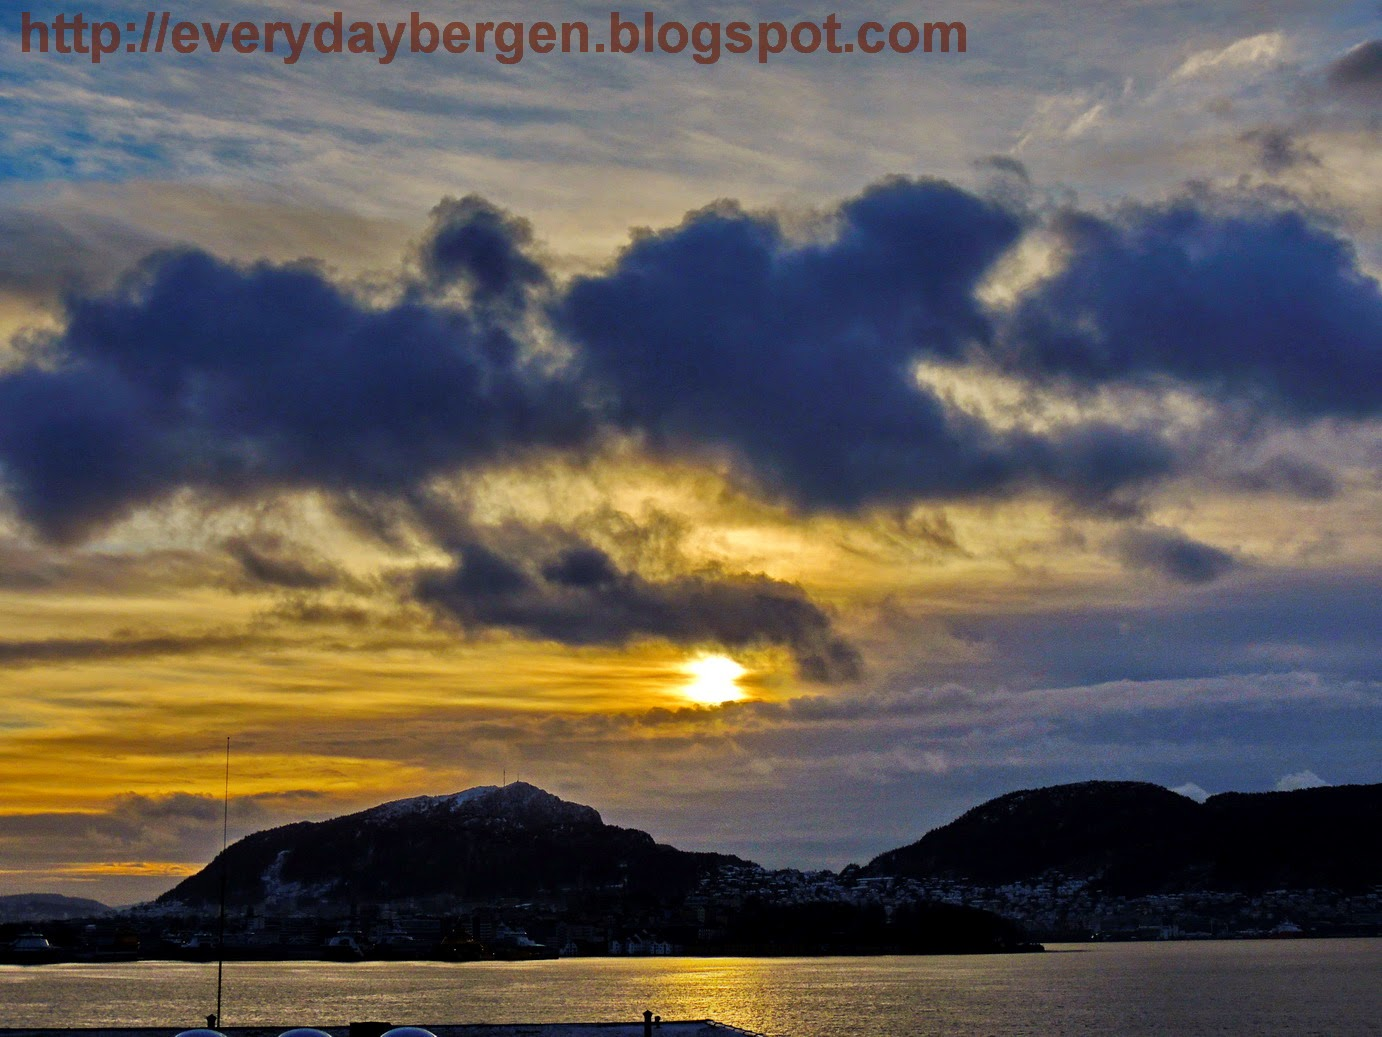 Winter sun over Bergen